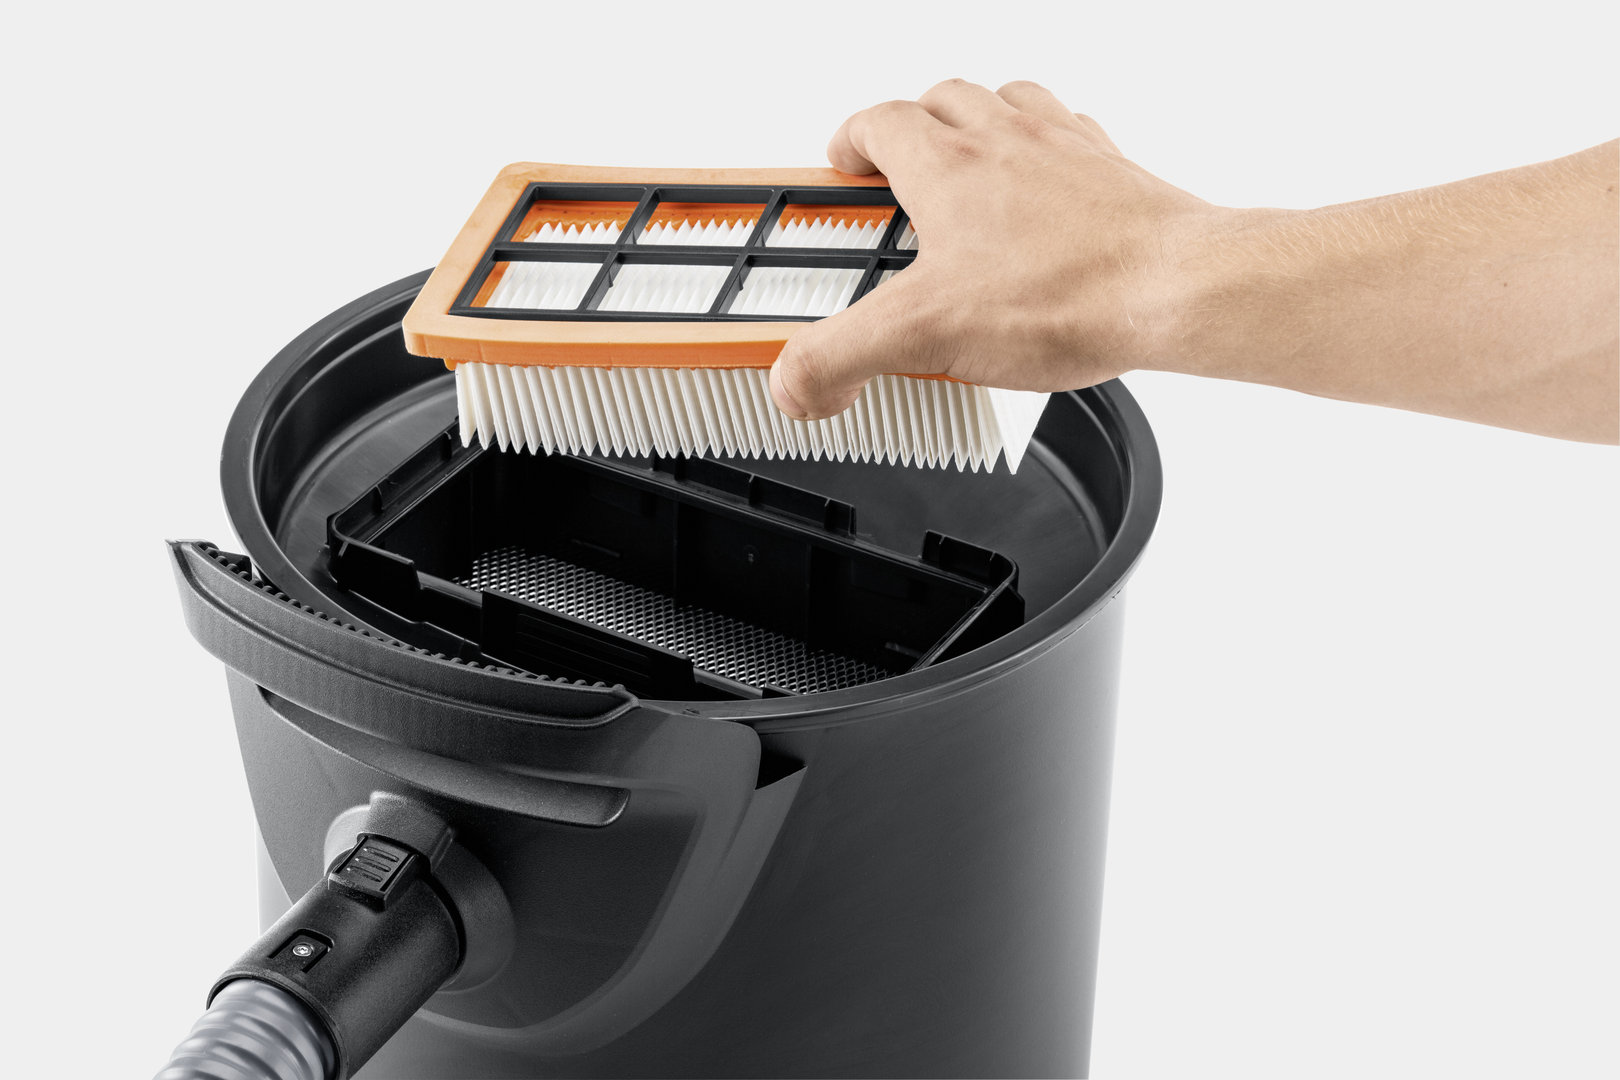 ad 4 premium ash vacuum cleaner with filter cleaner a + chimney